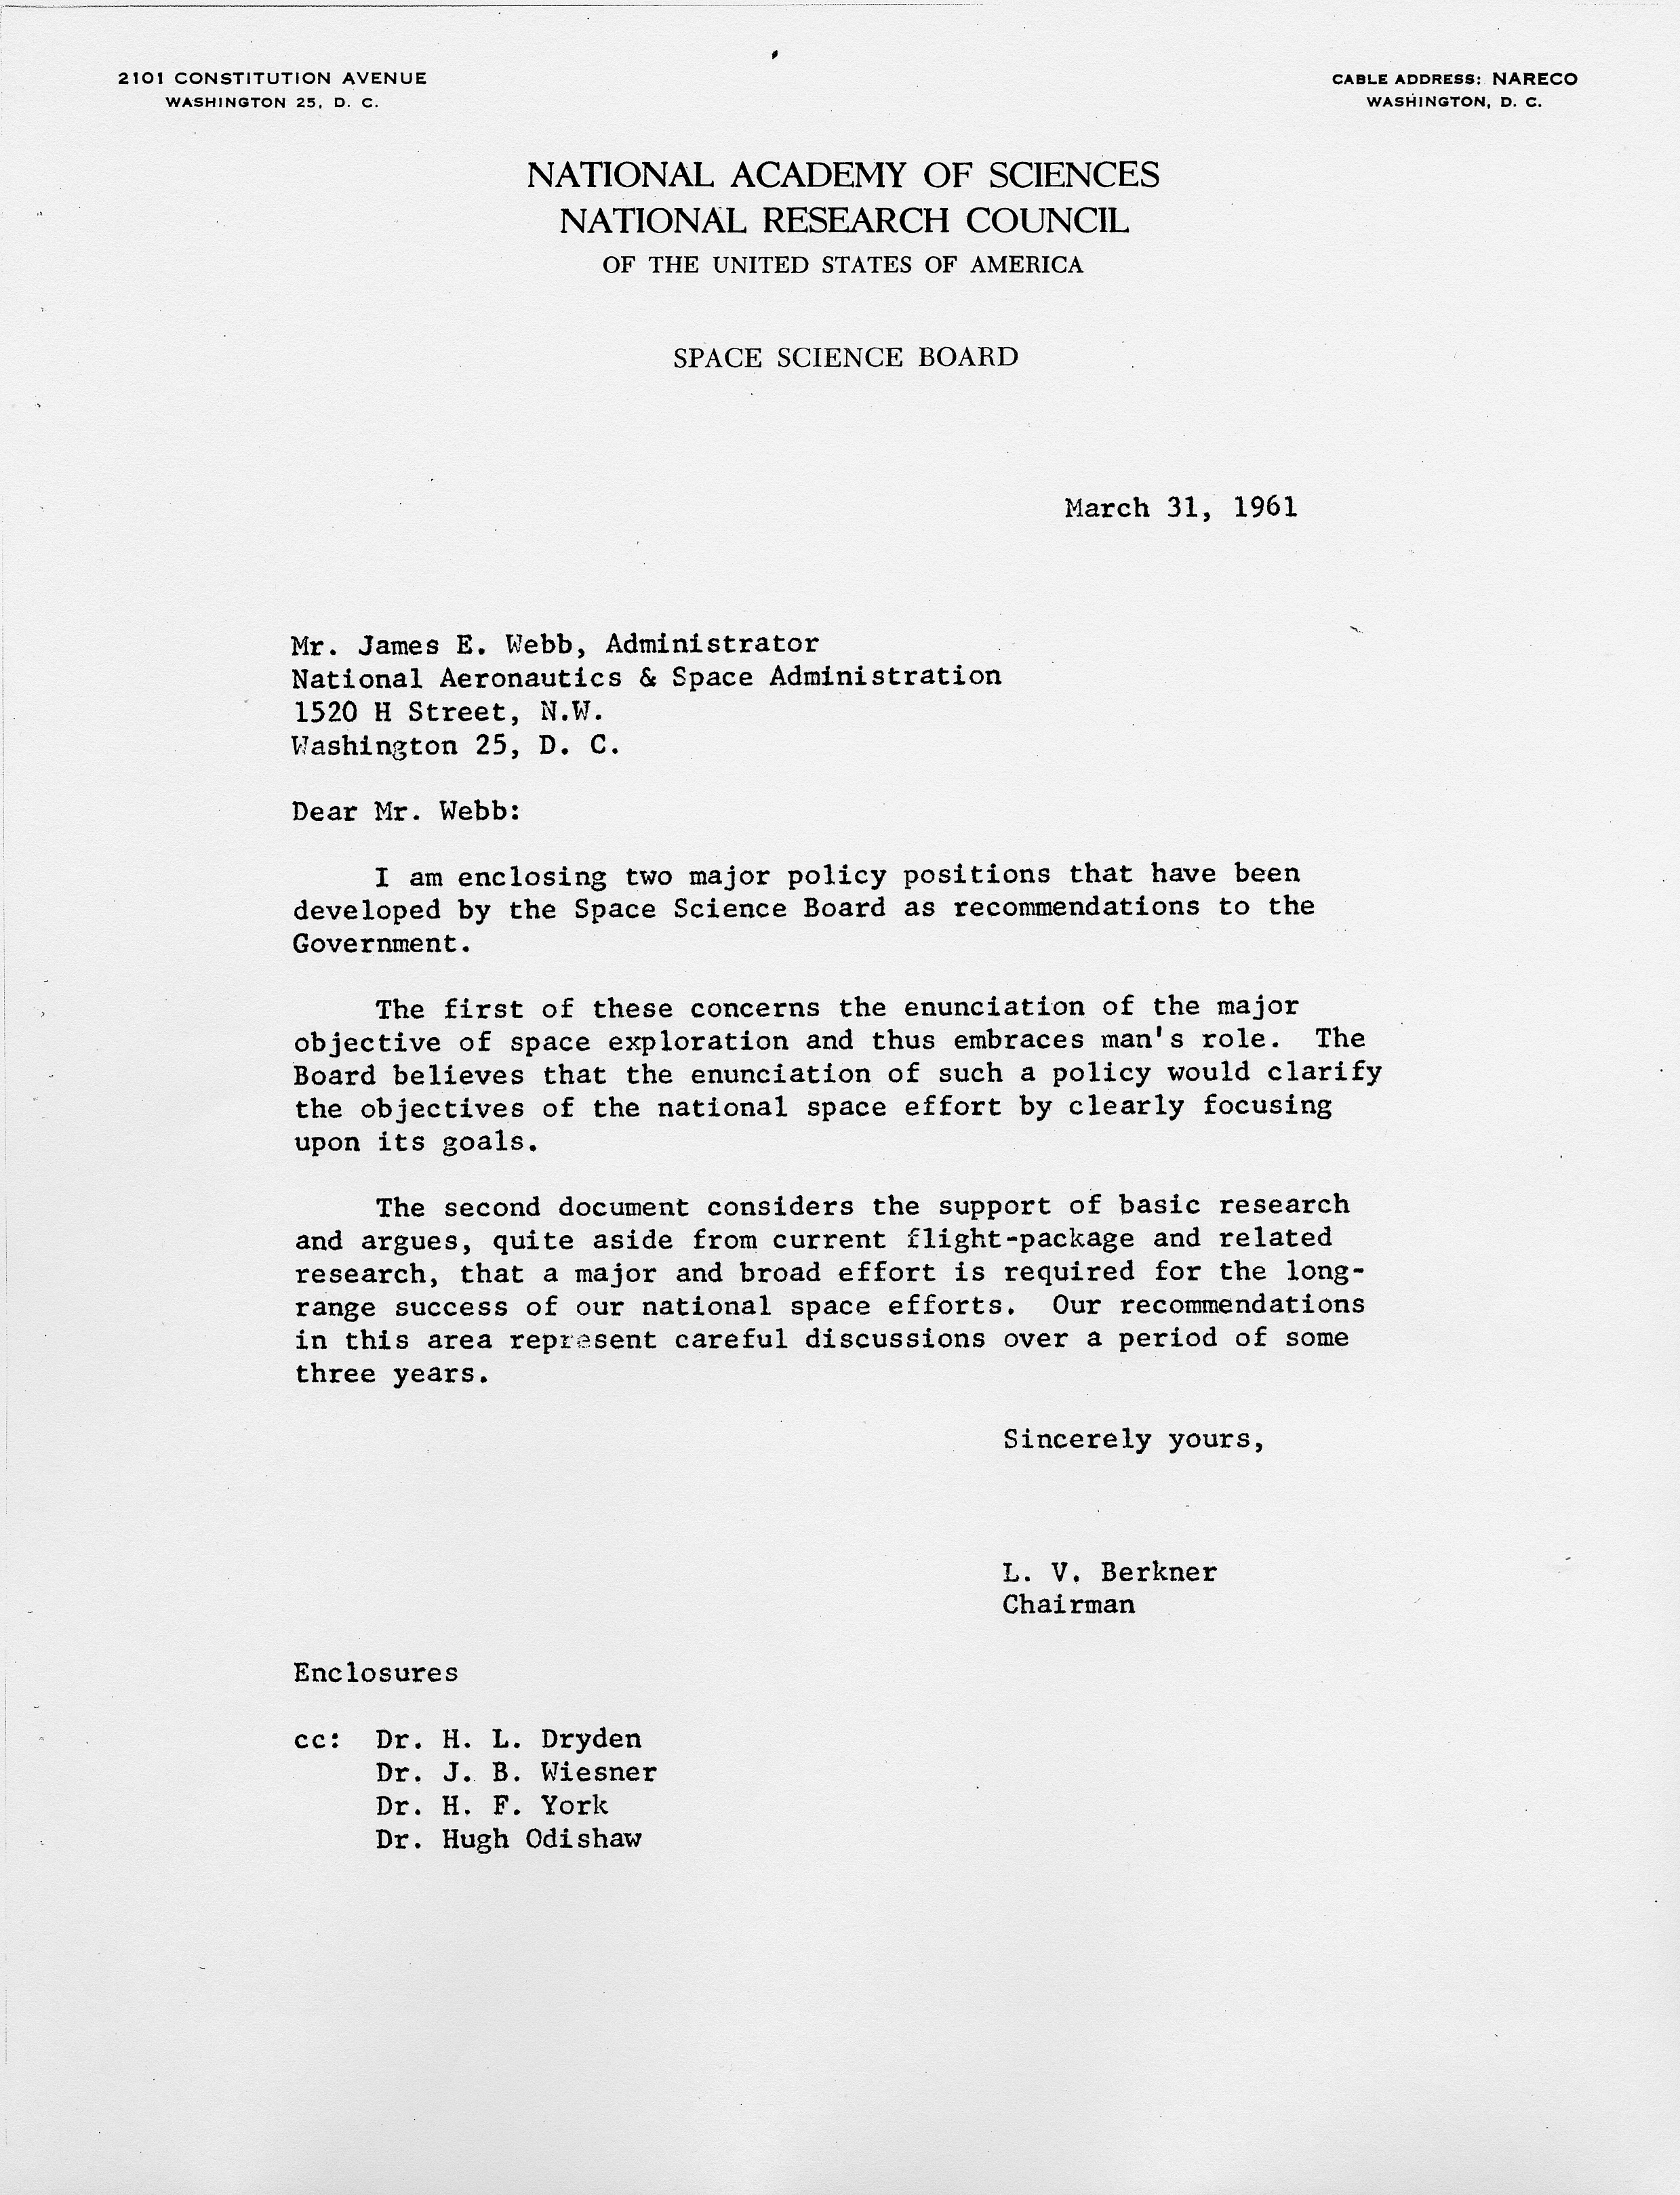 space science board 31 march 1961 letter report to nasa   u201cman u2019s role in the national space program u201d